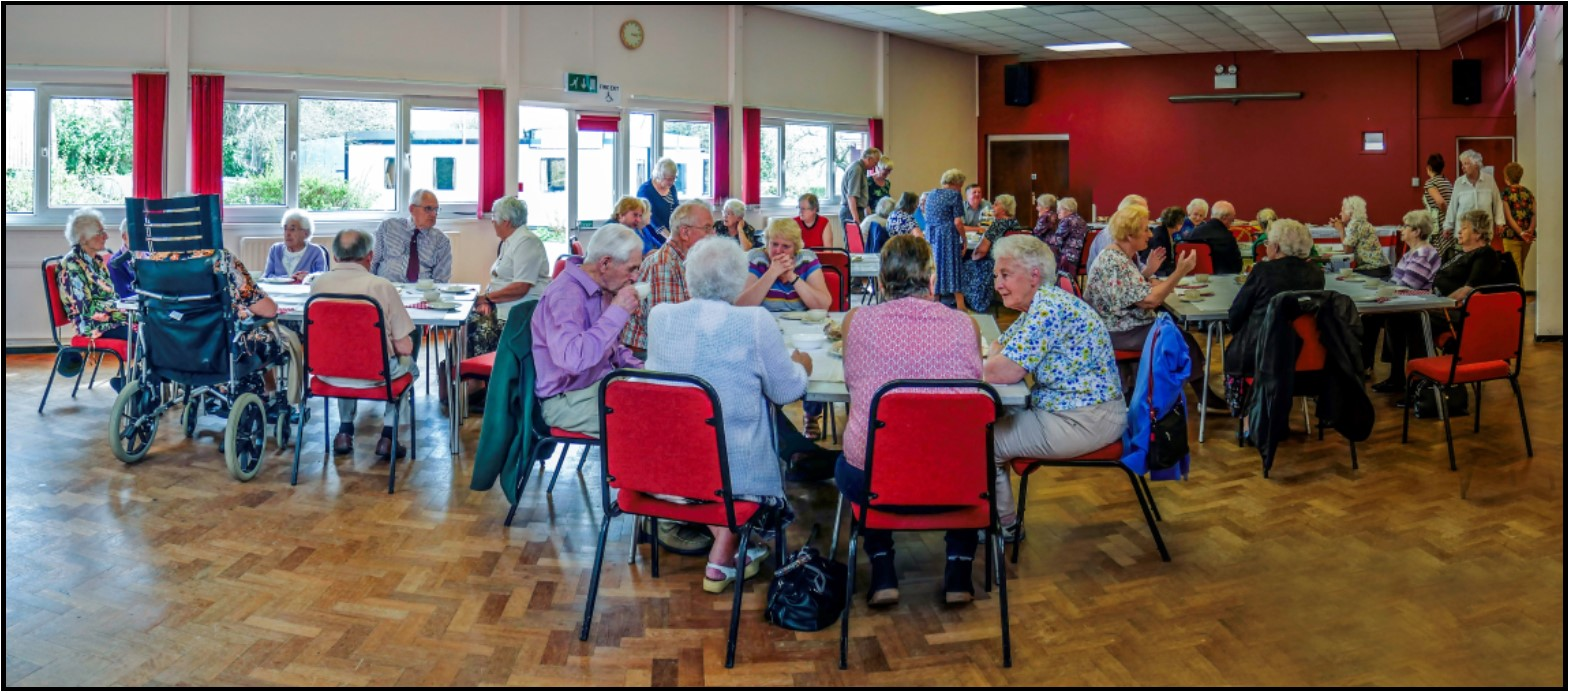 Guests enjoying the Over 85's tea party